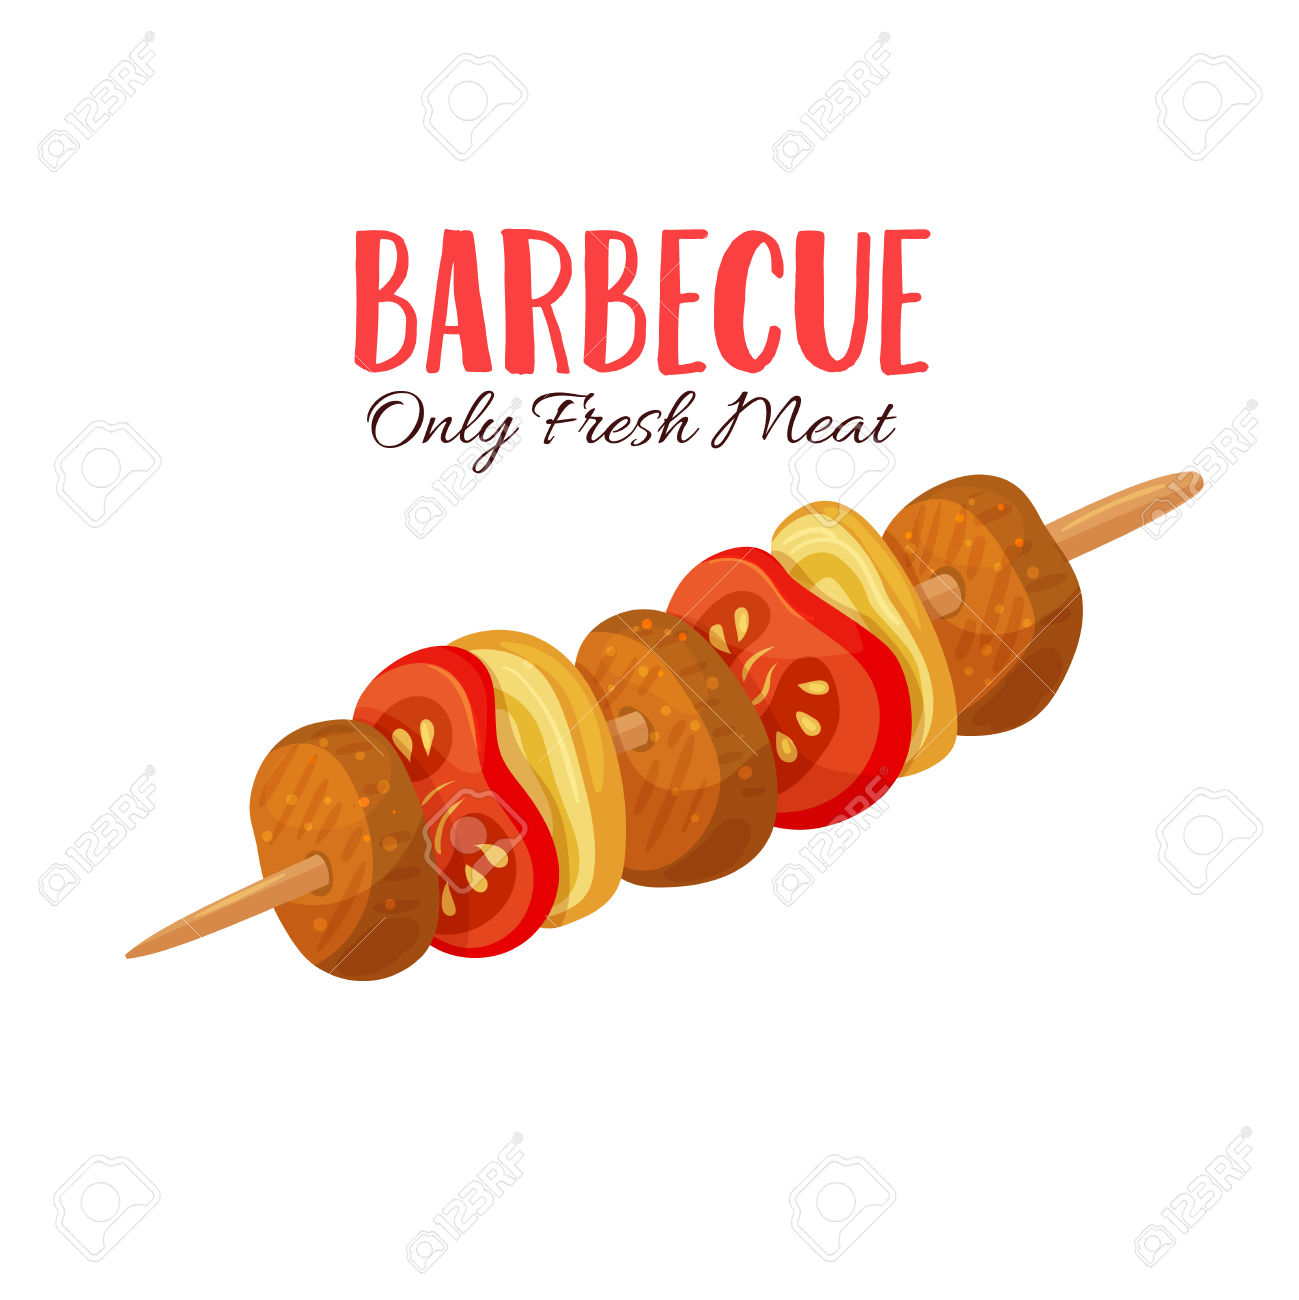 Barbecue clipart barbecue meat Illustration clipart collection meat Vector